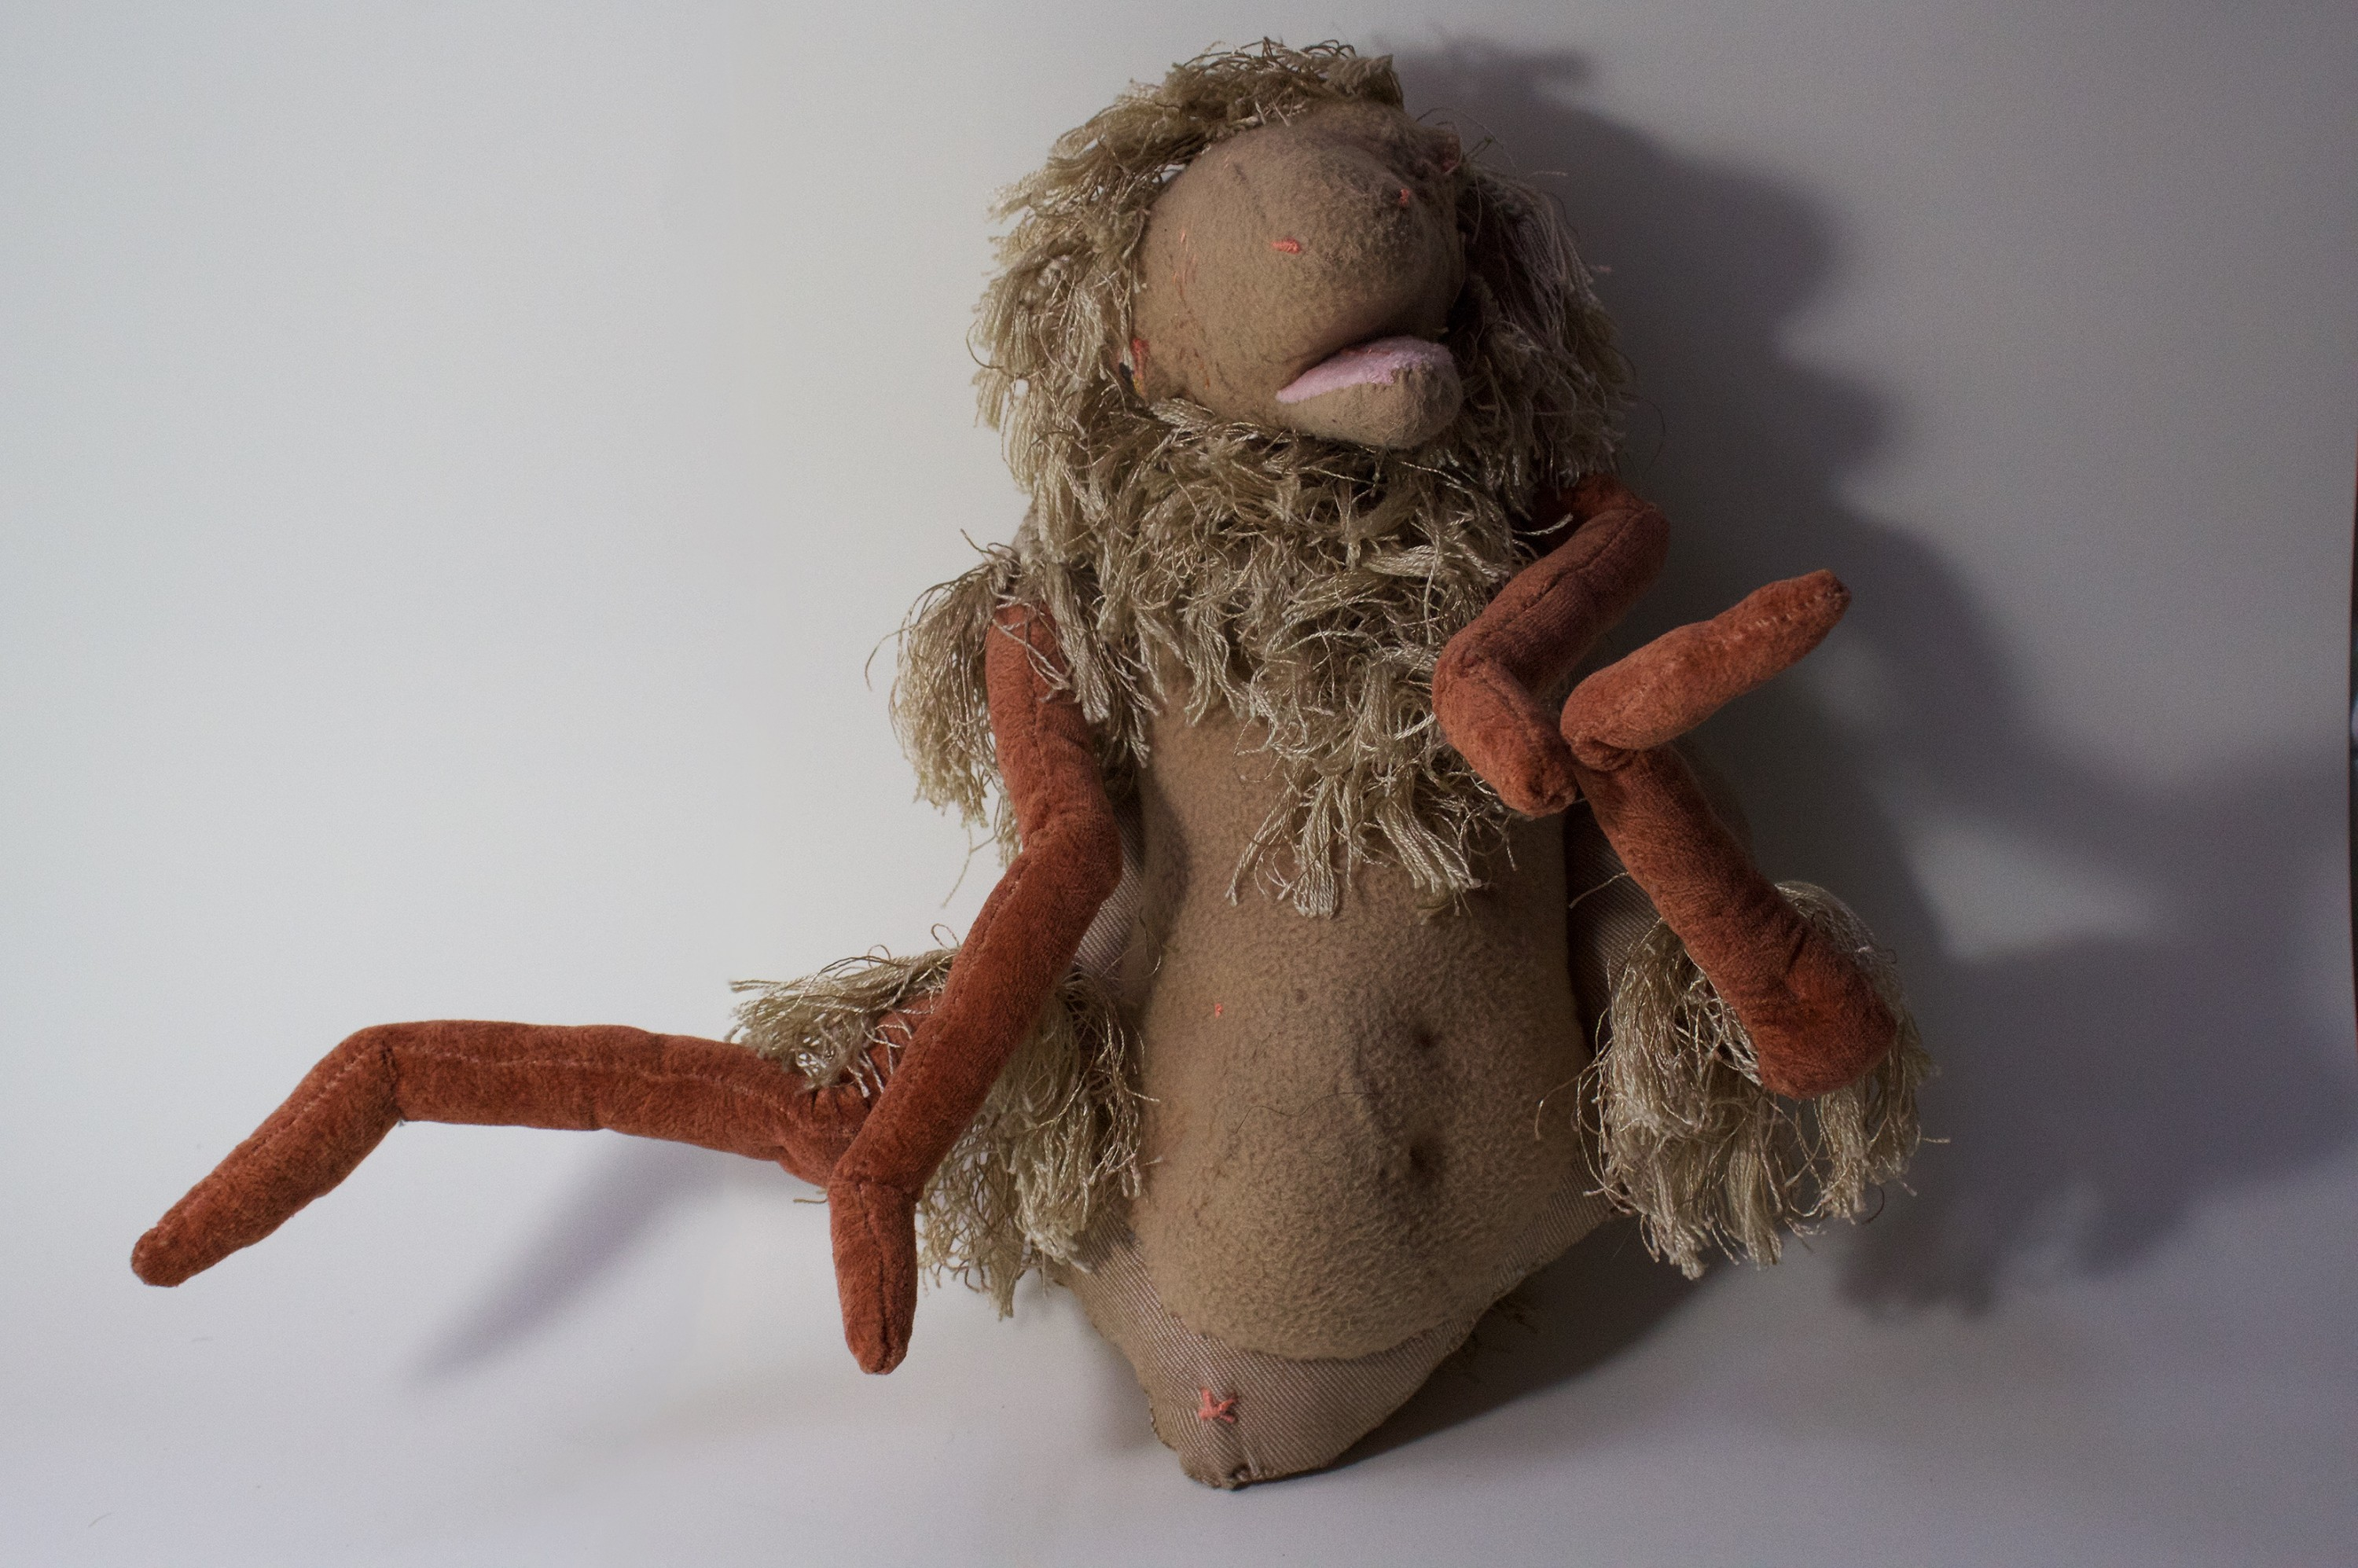 A smaller sized hand puppet. He looks a little like... a poorly groomed dog from another planet? He's beige, he likes to blend in, and often uses his mess of hair as a curtain to shield himself from scary stimuli.